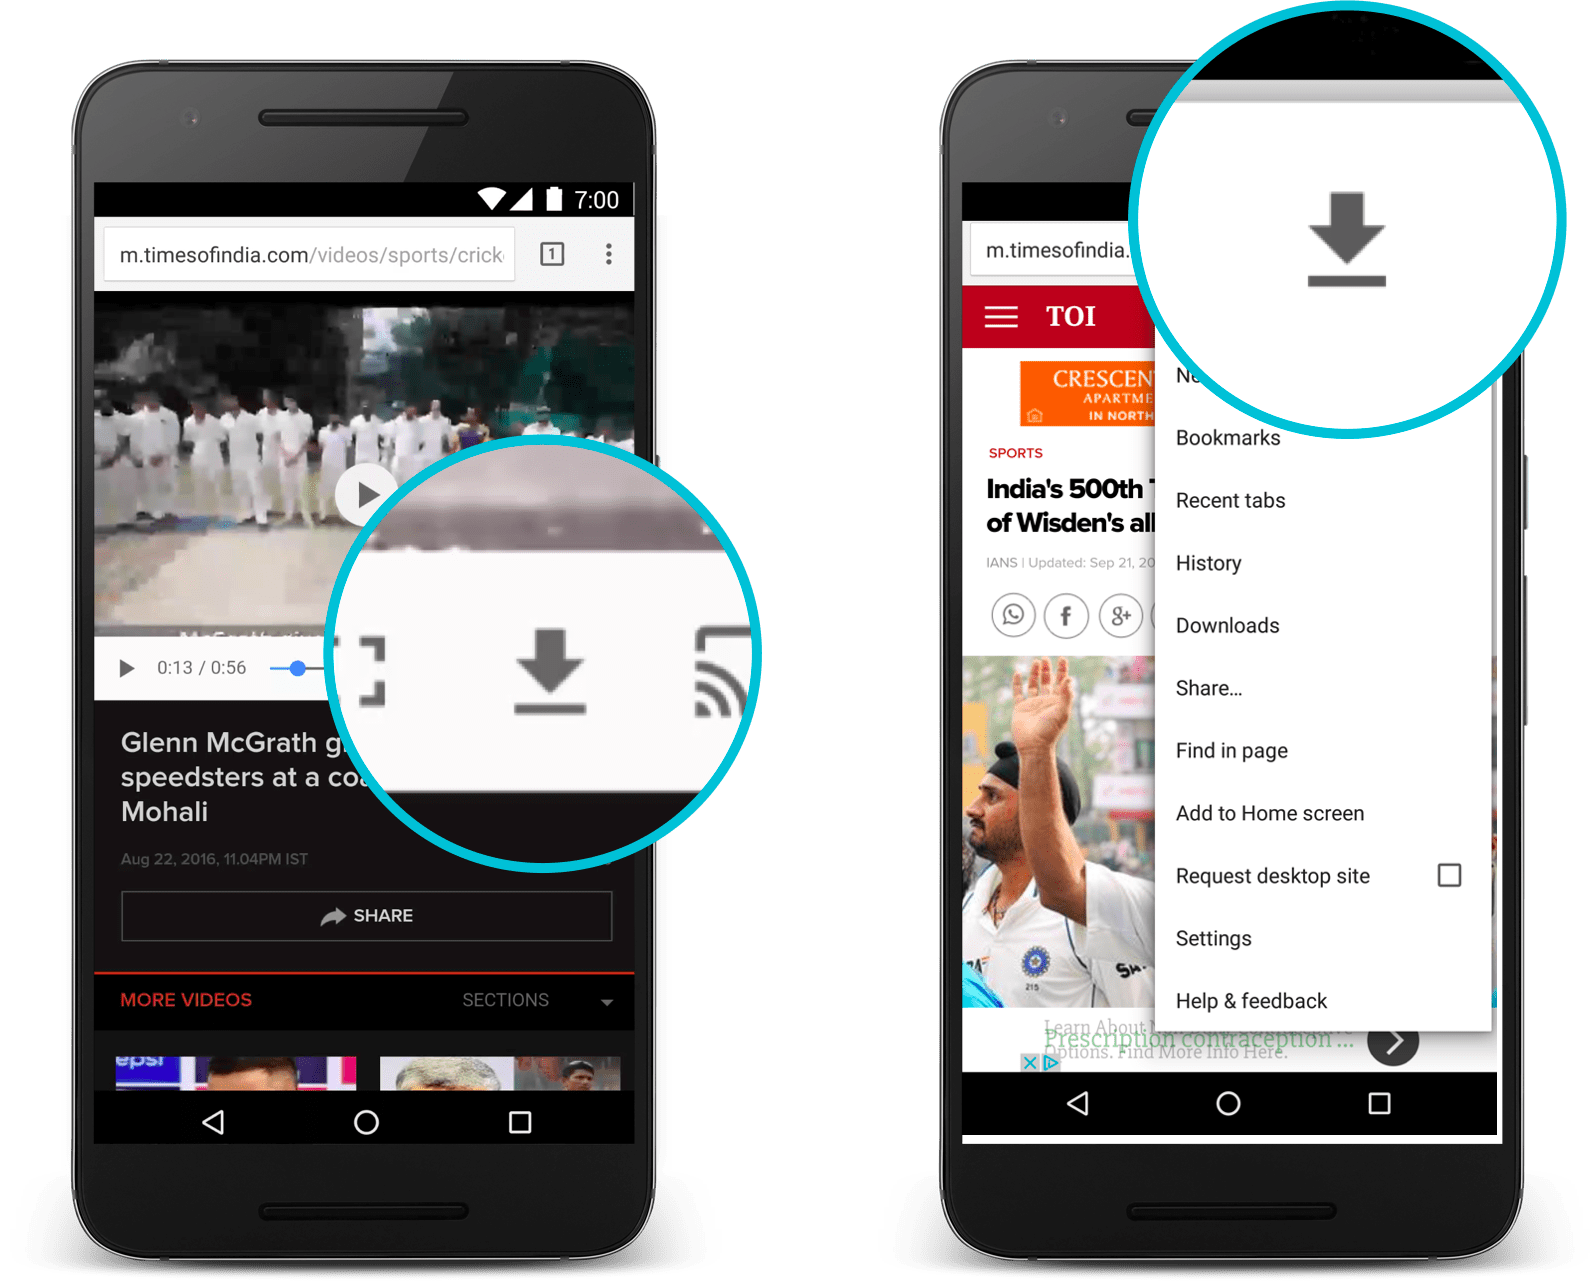 chrome for android will let you download entire web pages and use